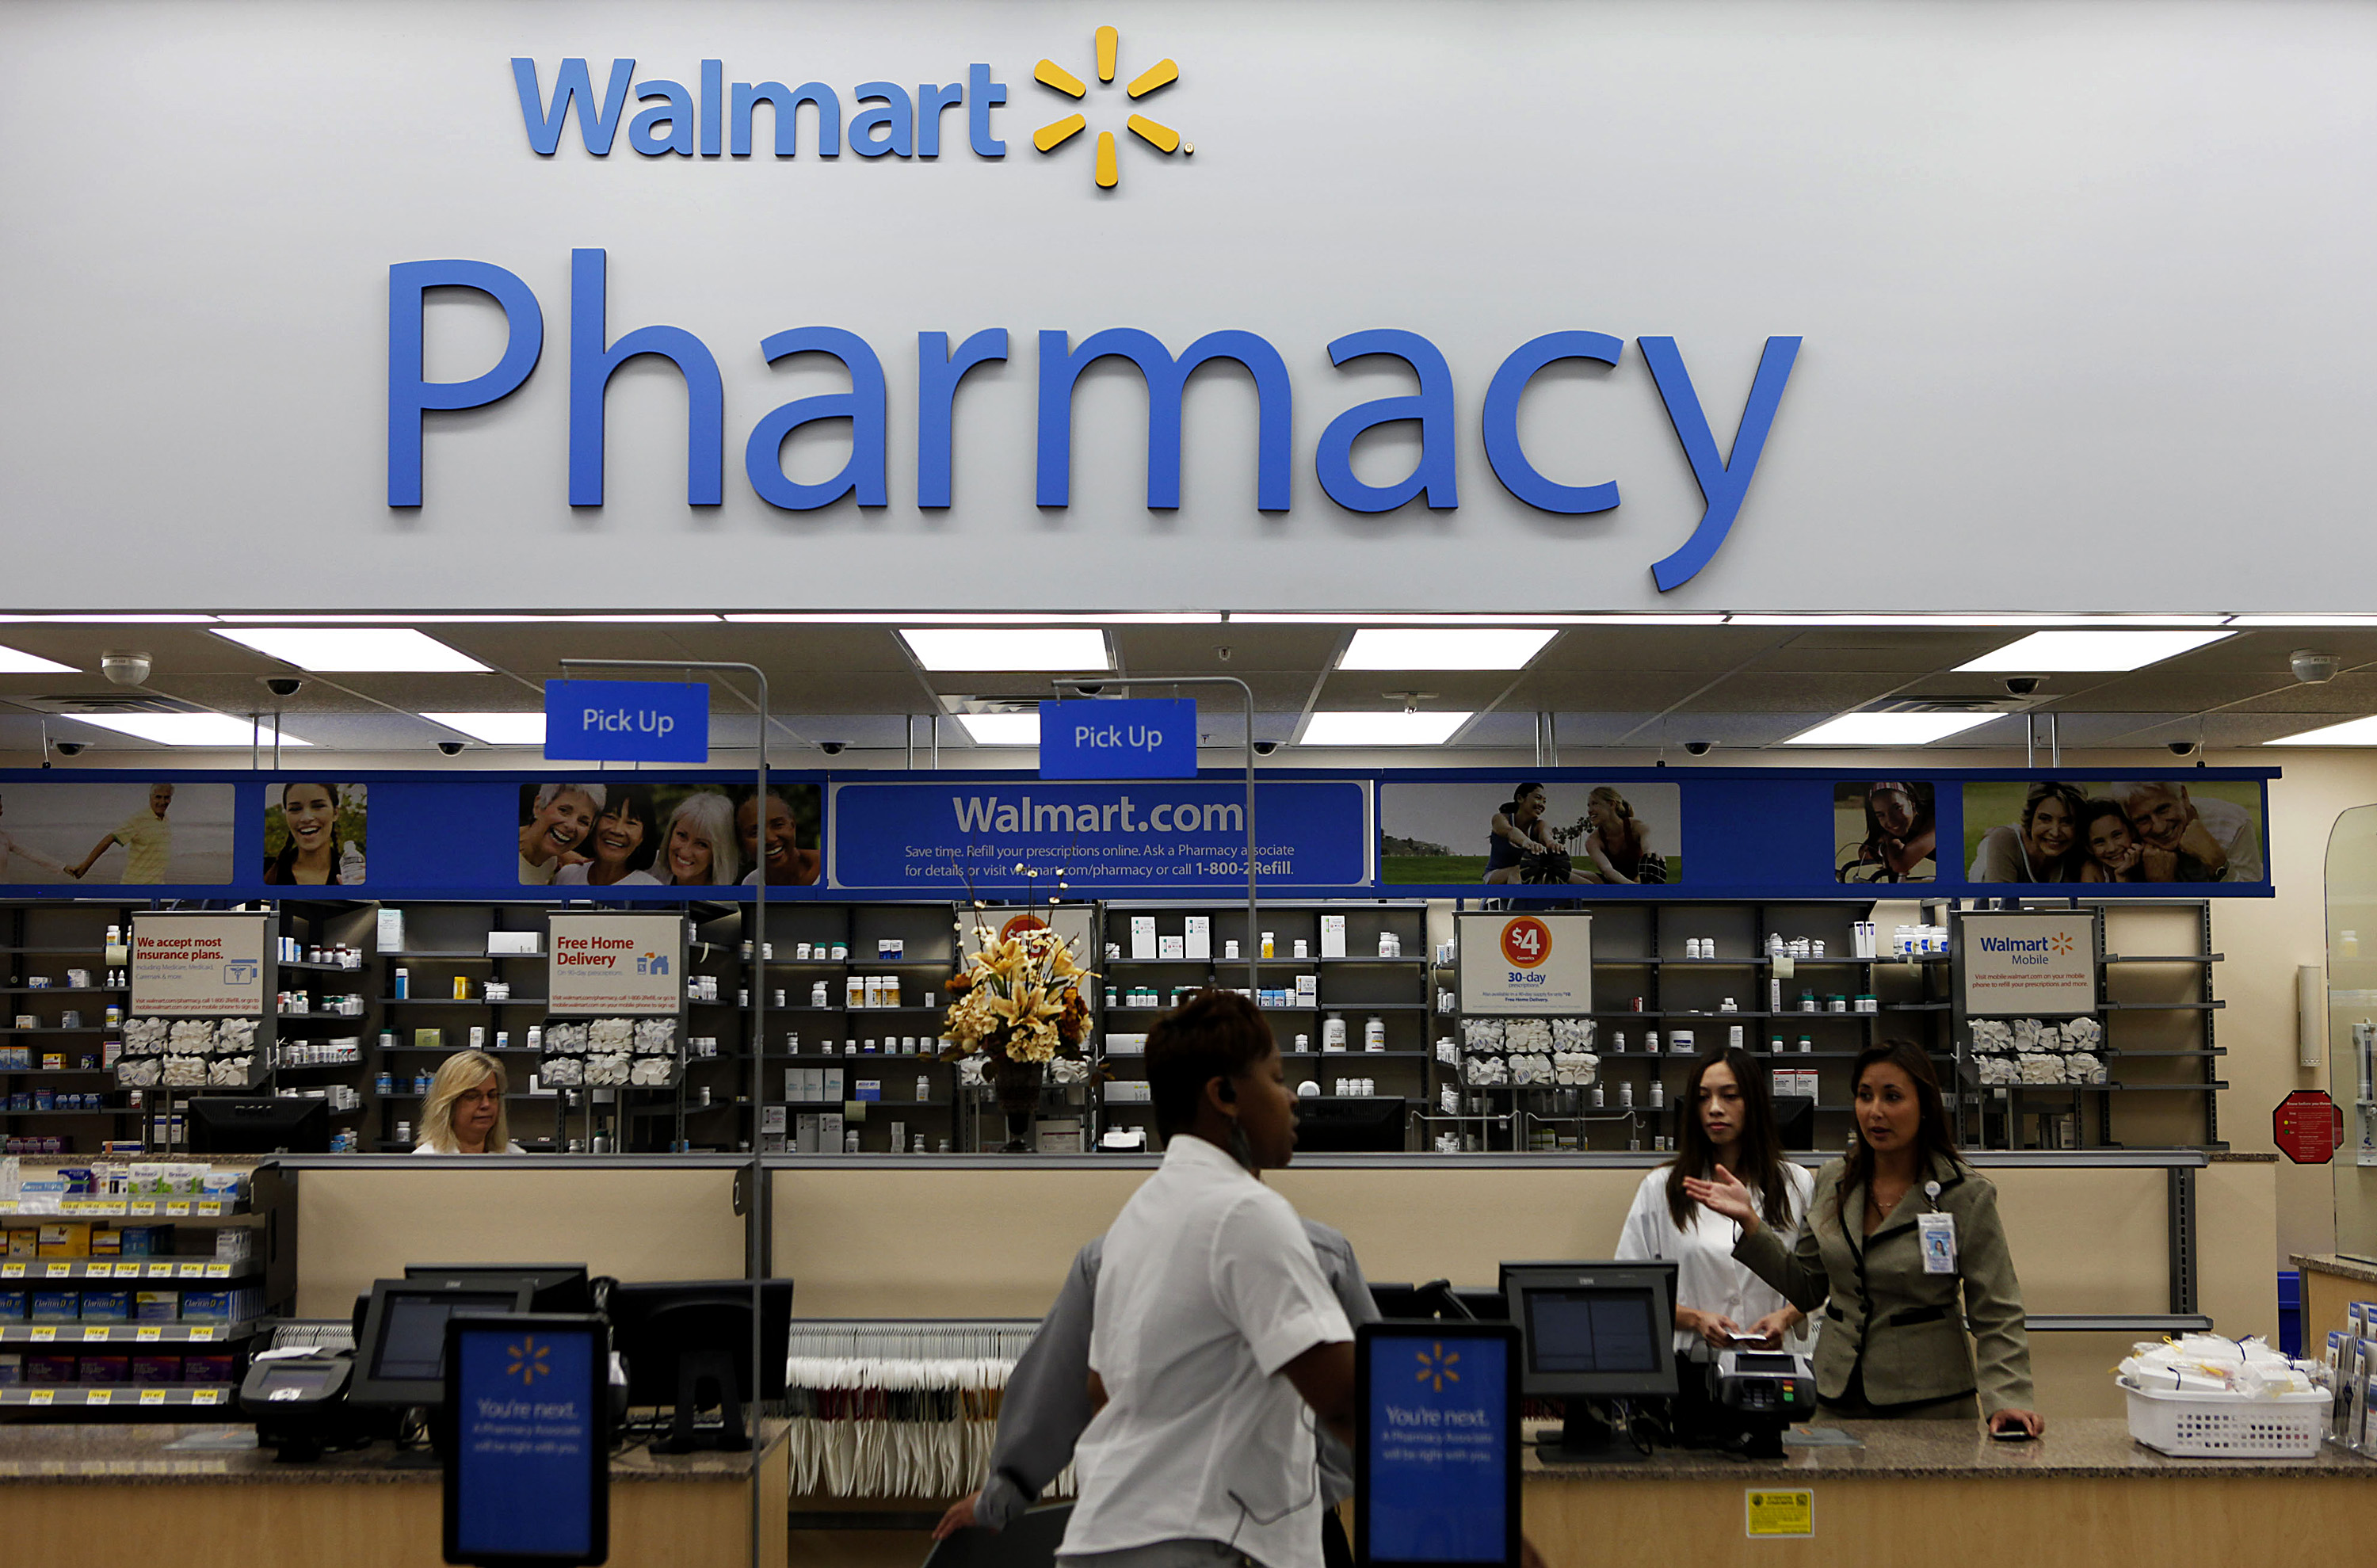 A customer walks past the pharmacy during the grand opening of a new Wal-Mart Stores Inc. location in Torrance, California, U.S., on Sept. 12, 2012.